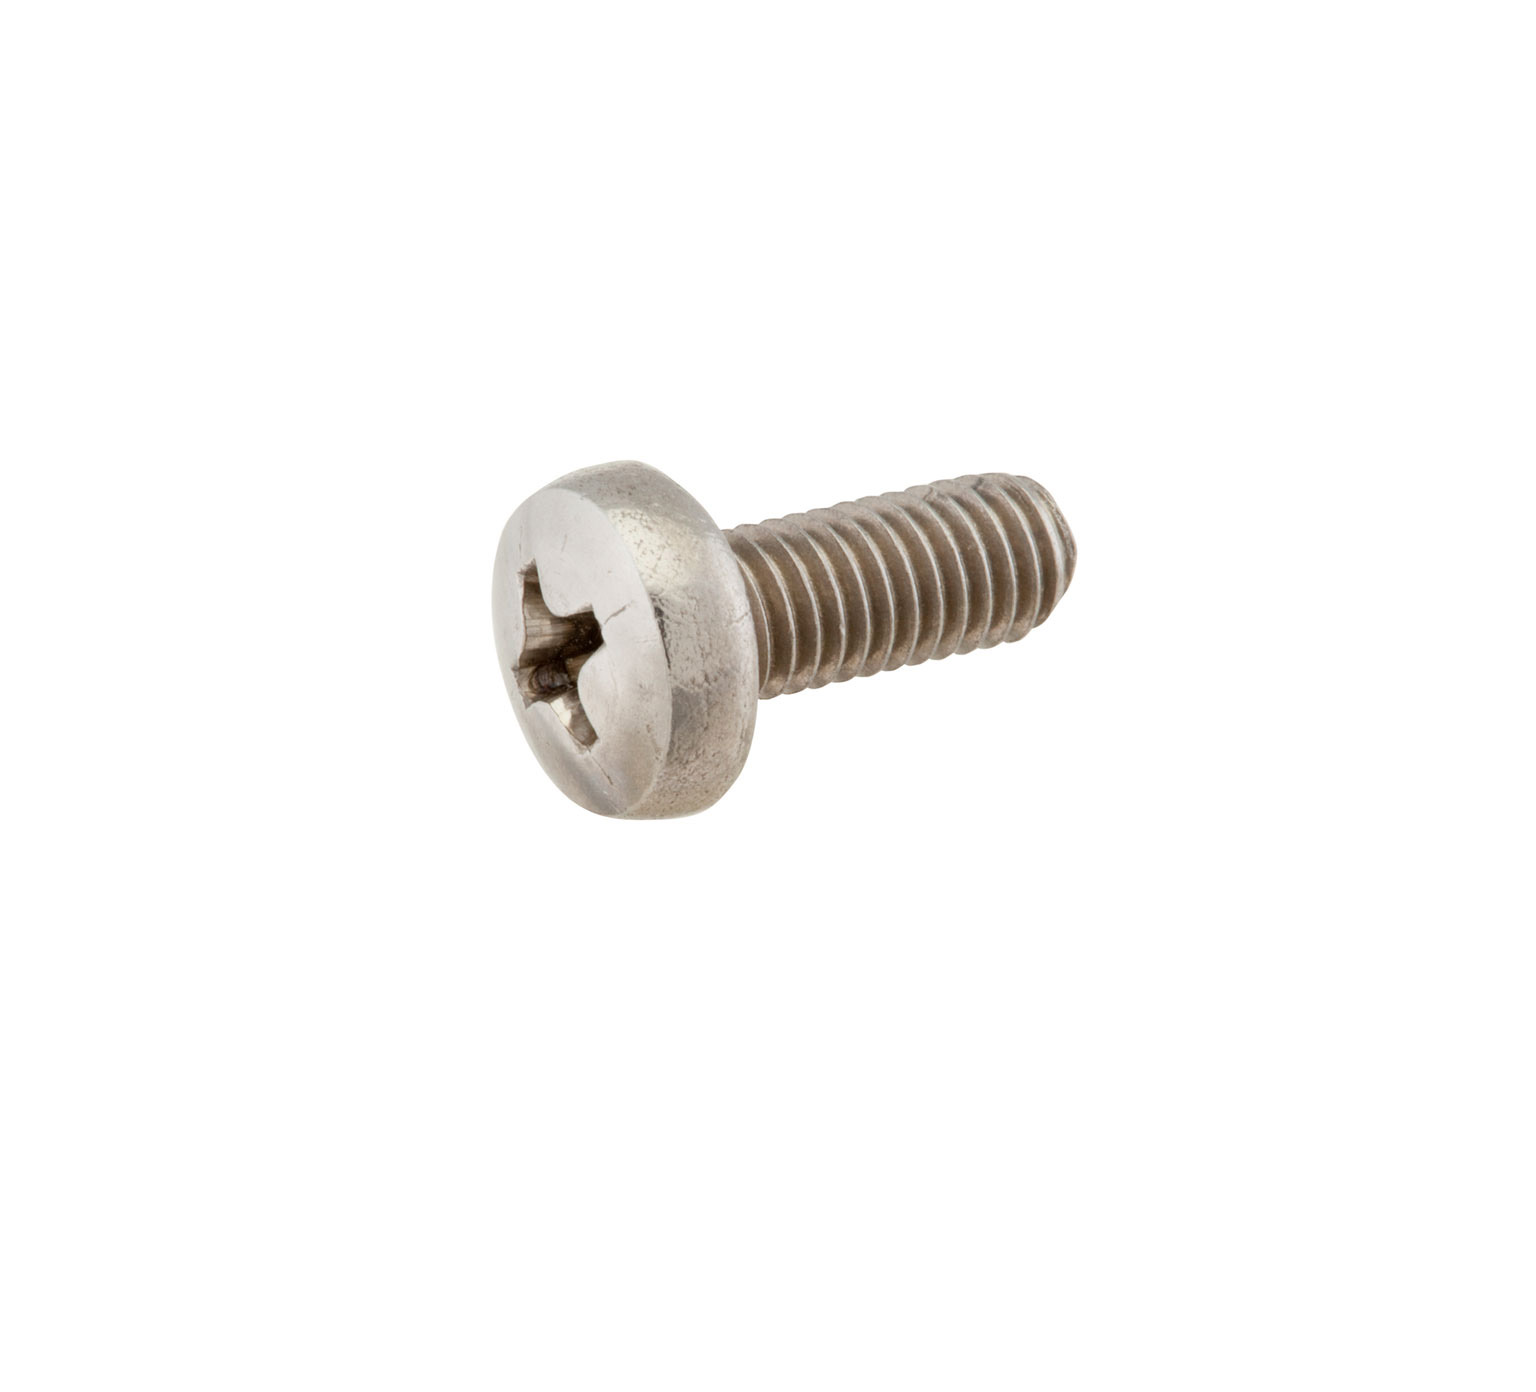 09200 Stainless Steel Phillips Pan Screw - M5 Thread x 0.5 in alt 1